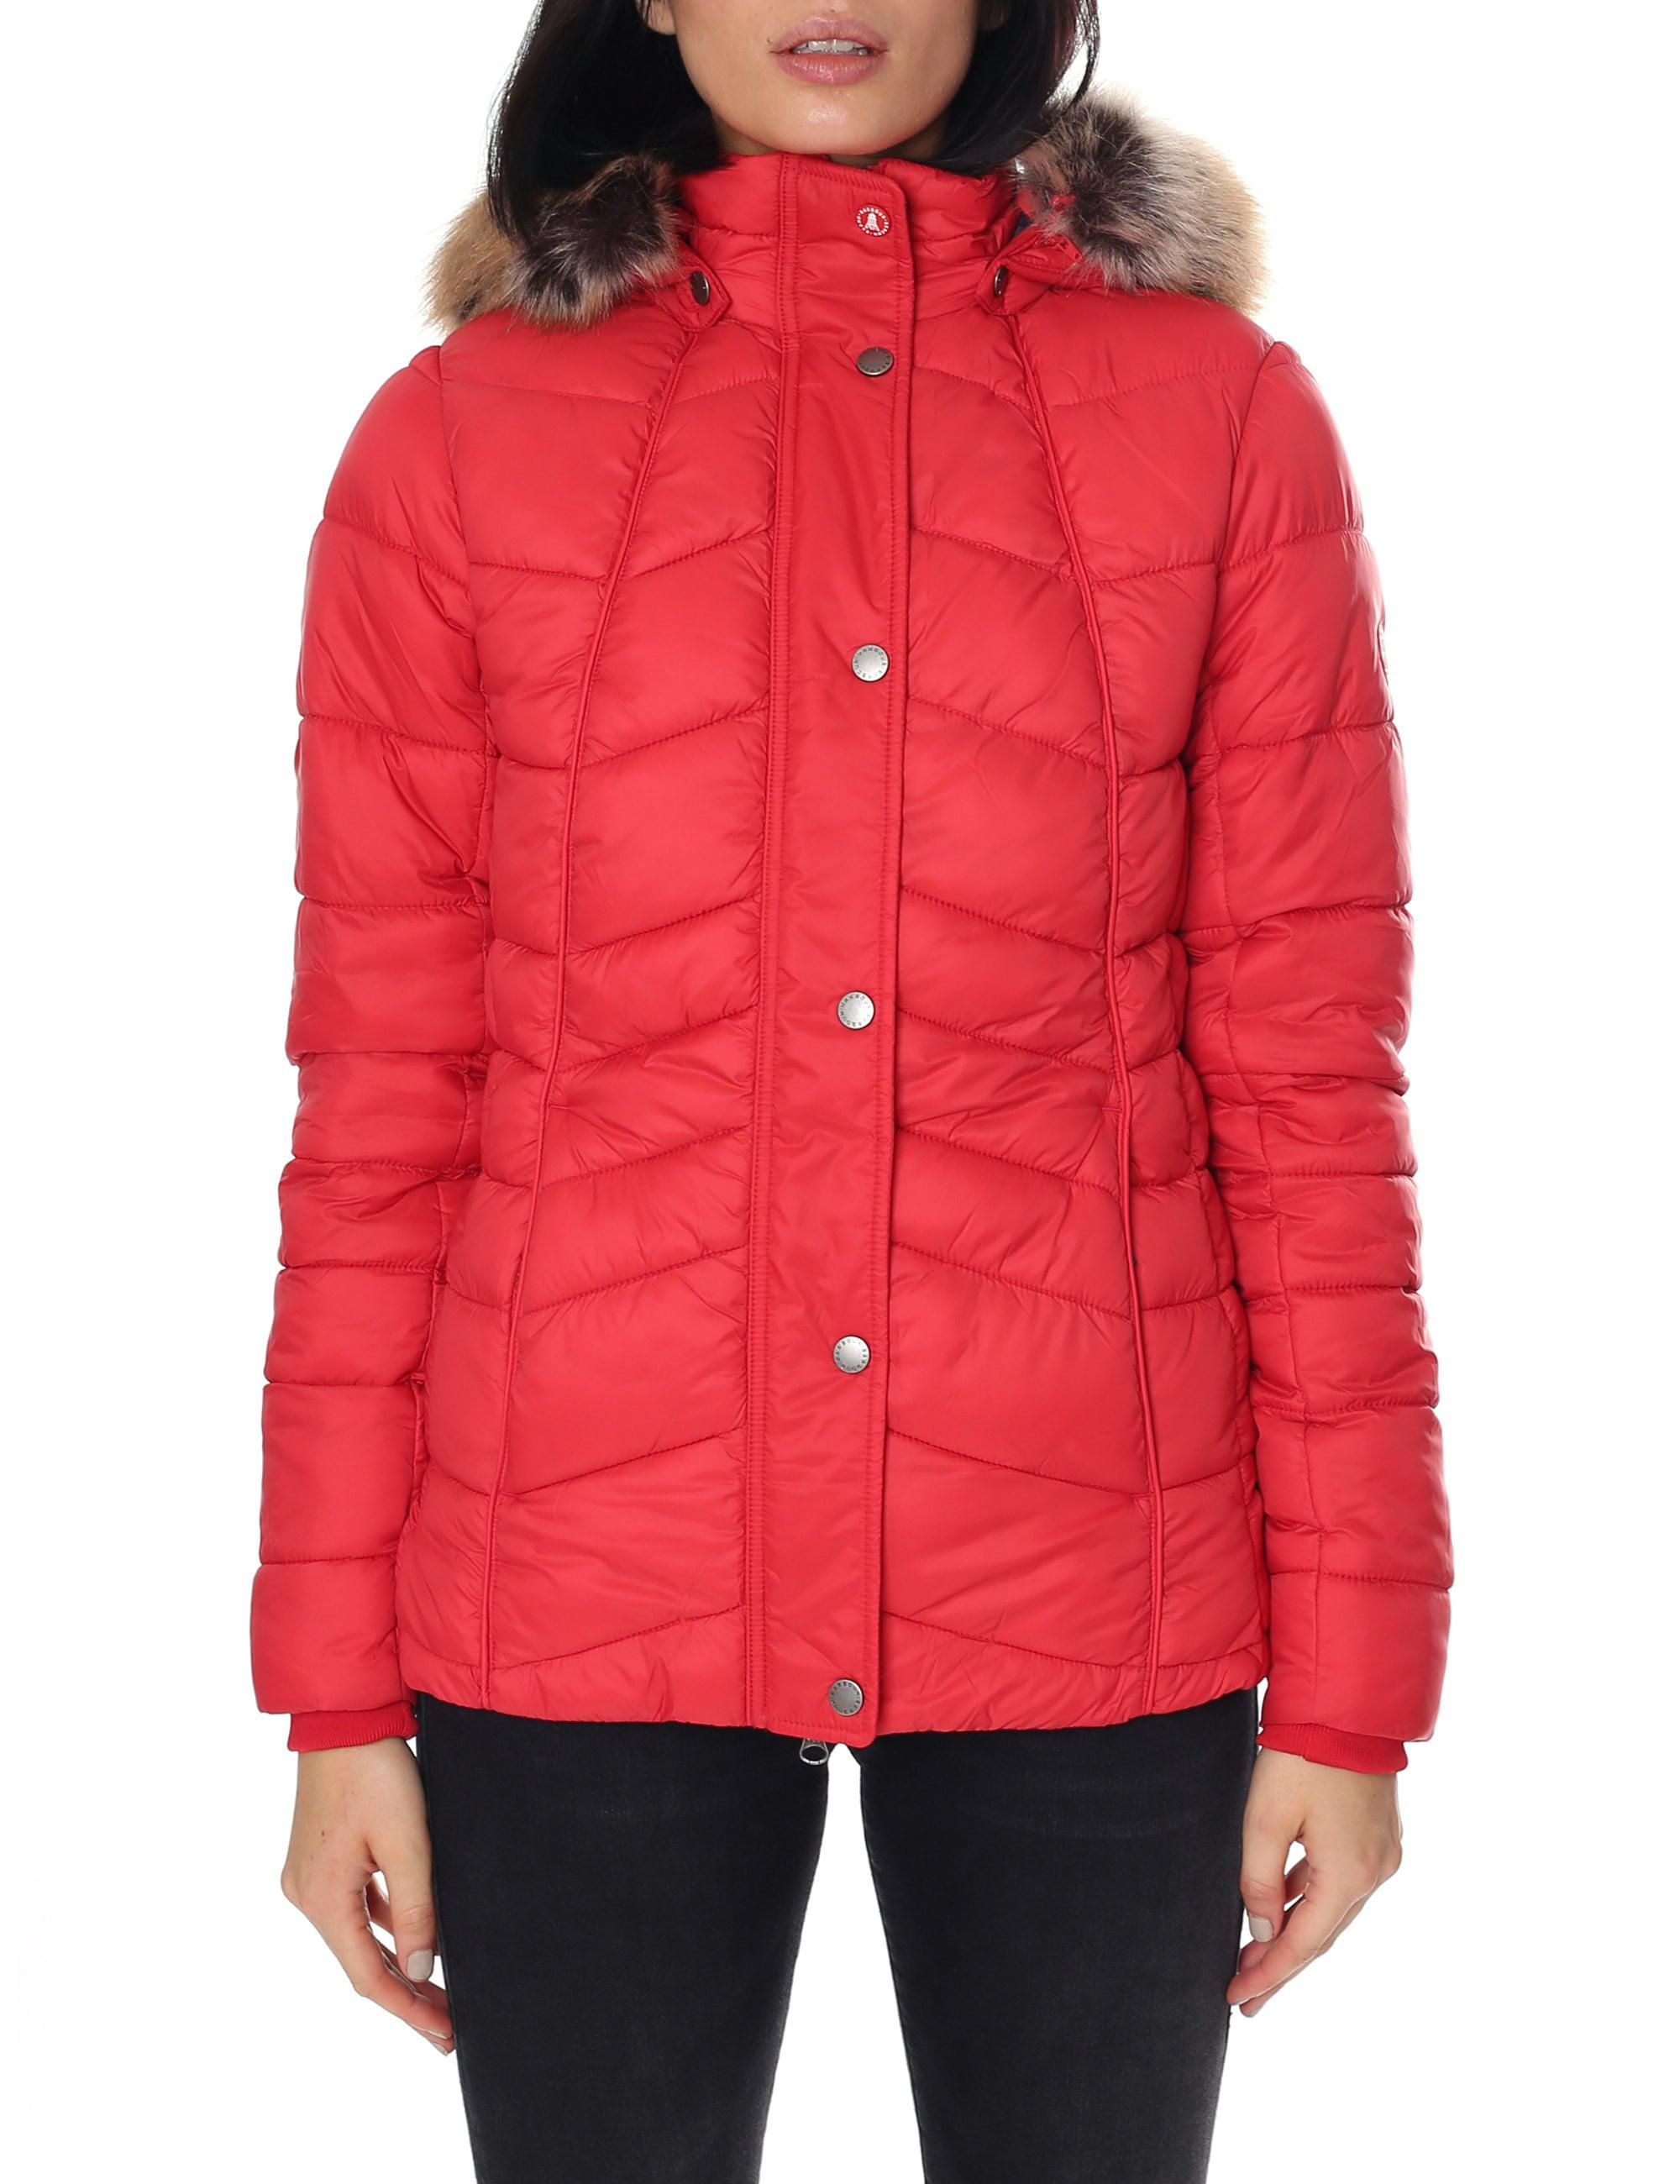 e4dafd8cf0fc Barbour Women s Bernera Quilt Jacket Reef Red in Red - Lyst